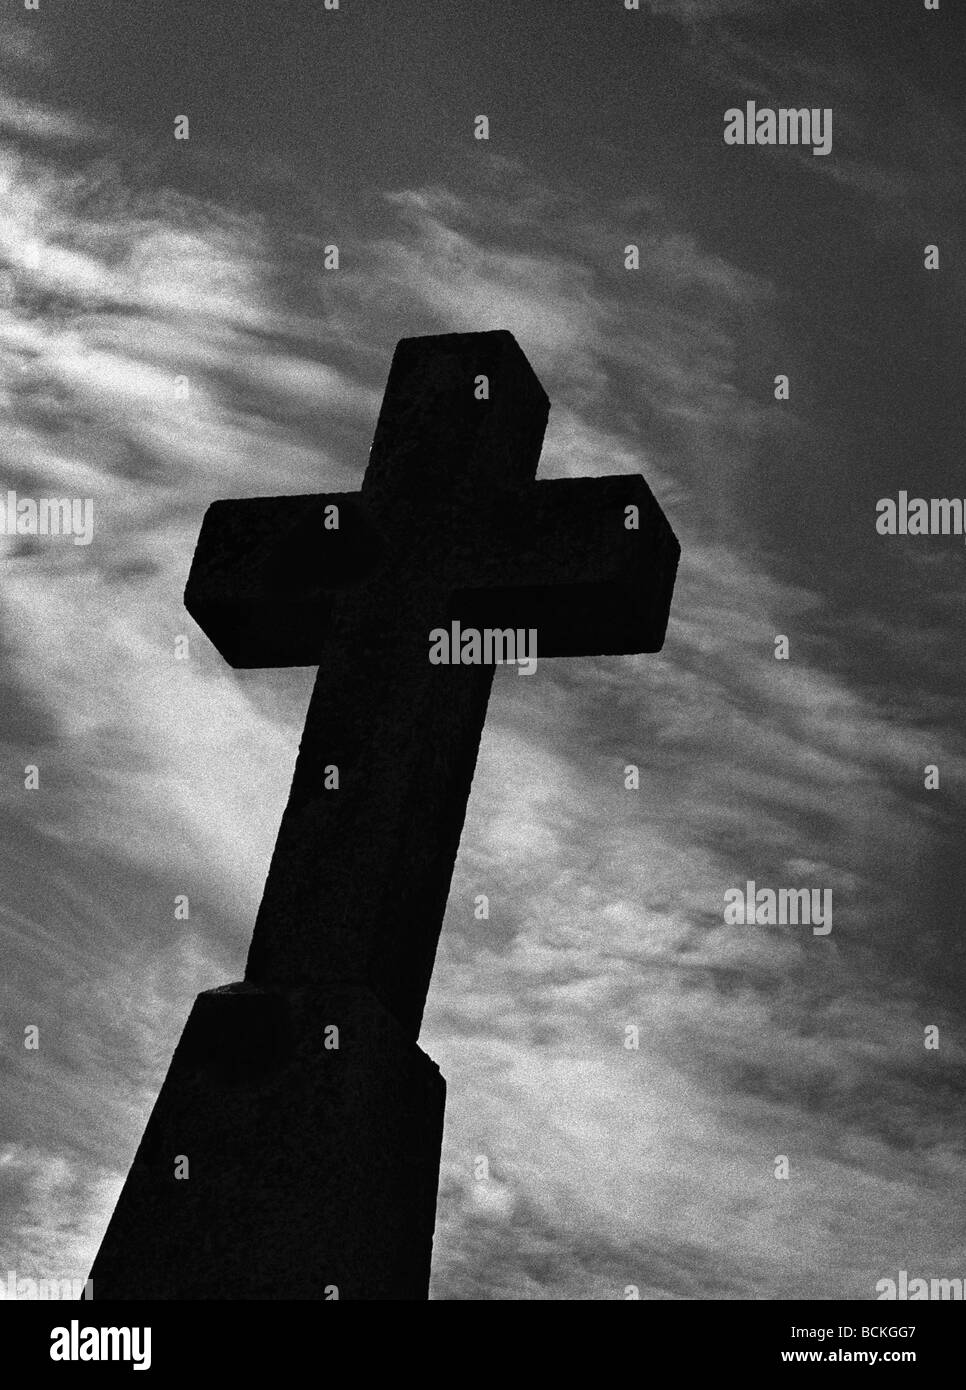 Silhouette of cross in front of sky, b&w - Stock Image